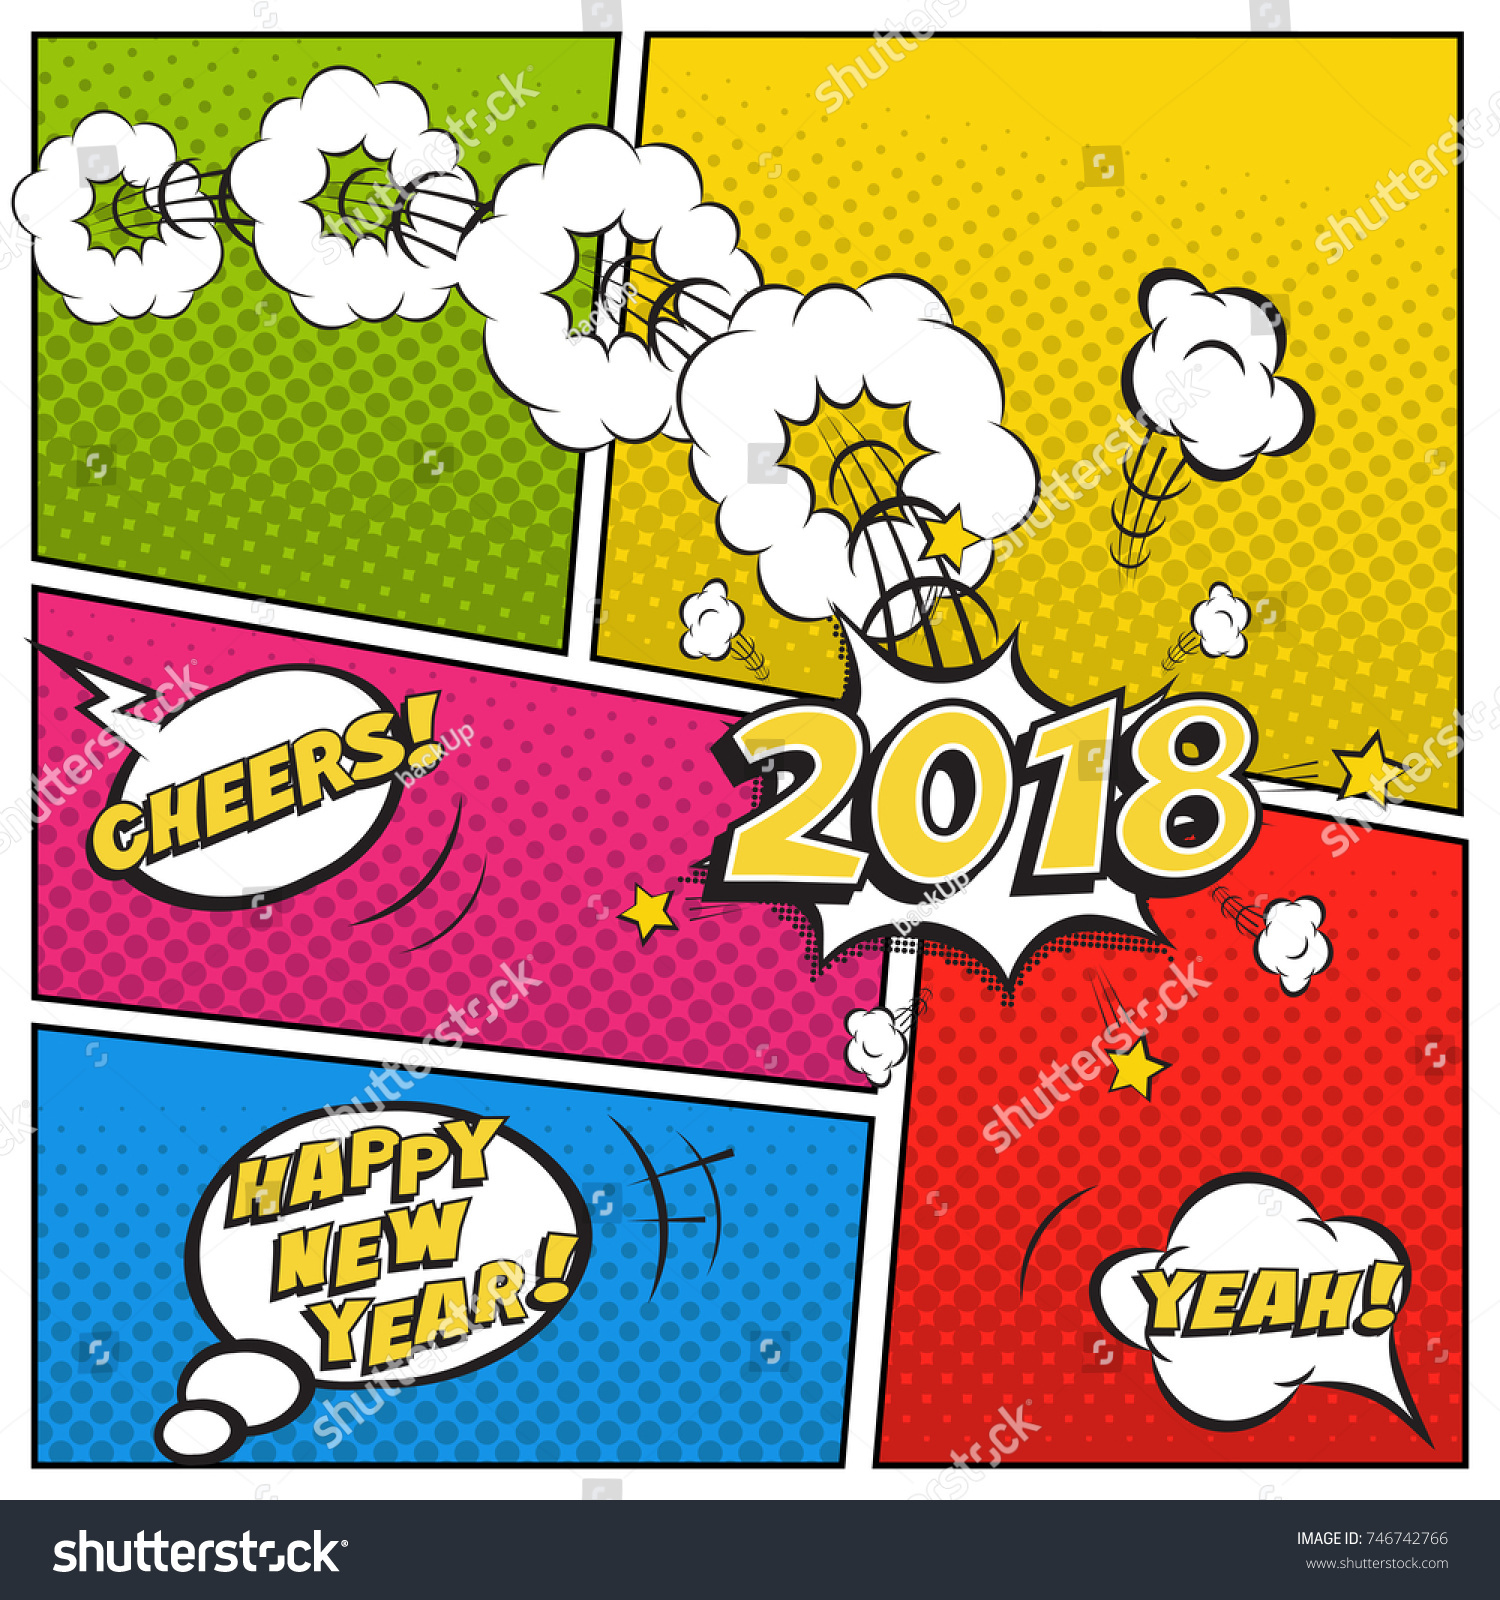 2018 new year comic book style stock vector 746742766 shutterstock 2018 new year comic book style postcard or greeting card template vector 2018 new year magicingreecefo Choice Image